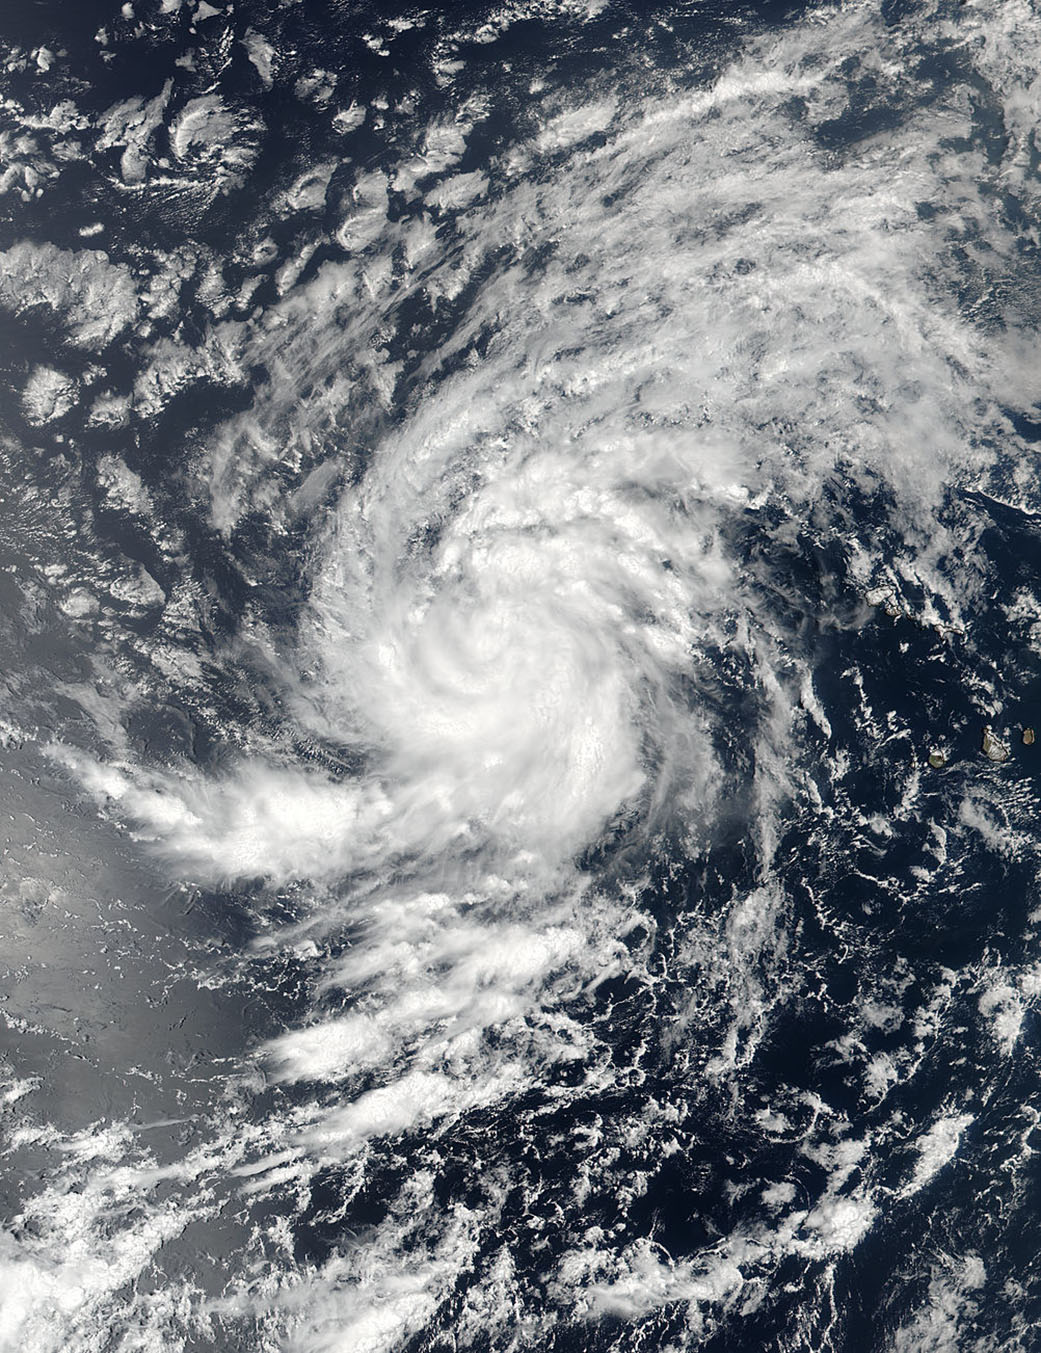 On Aug. 30 at 11:36 a.m. EDT (1536 UTC) NASA-NOAA's Suomi NPP satellite captured a visible image of Tropical Storm Irma in the Eastern Atlantic Ocean. Credits: NASA/NOAA, Goddard Rapid Response Team